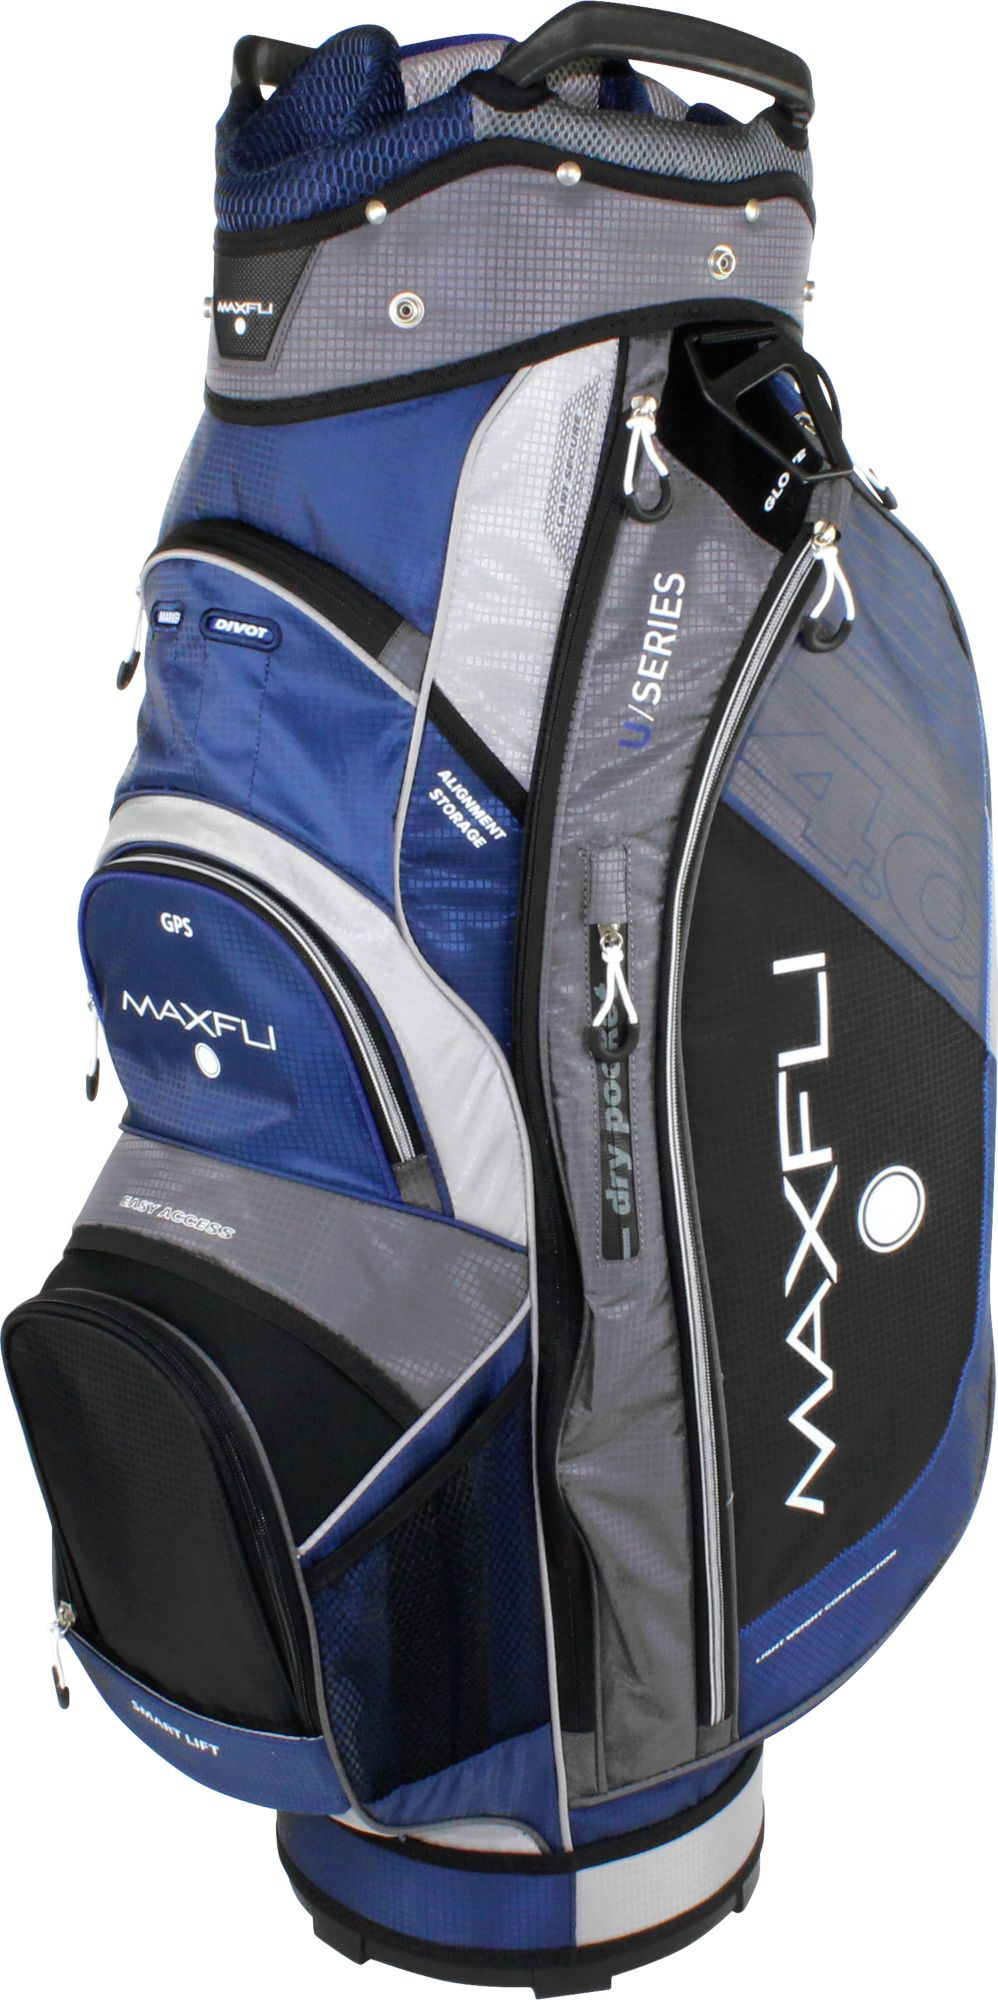 Fantastic Maxfli Useries 4 0 Personalized Cart Bag